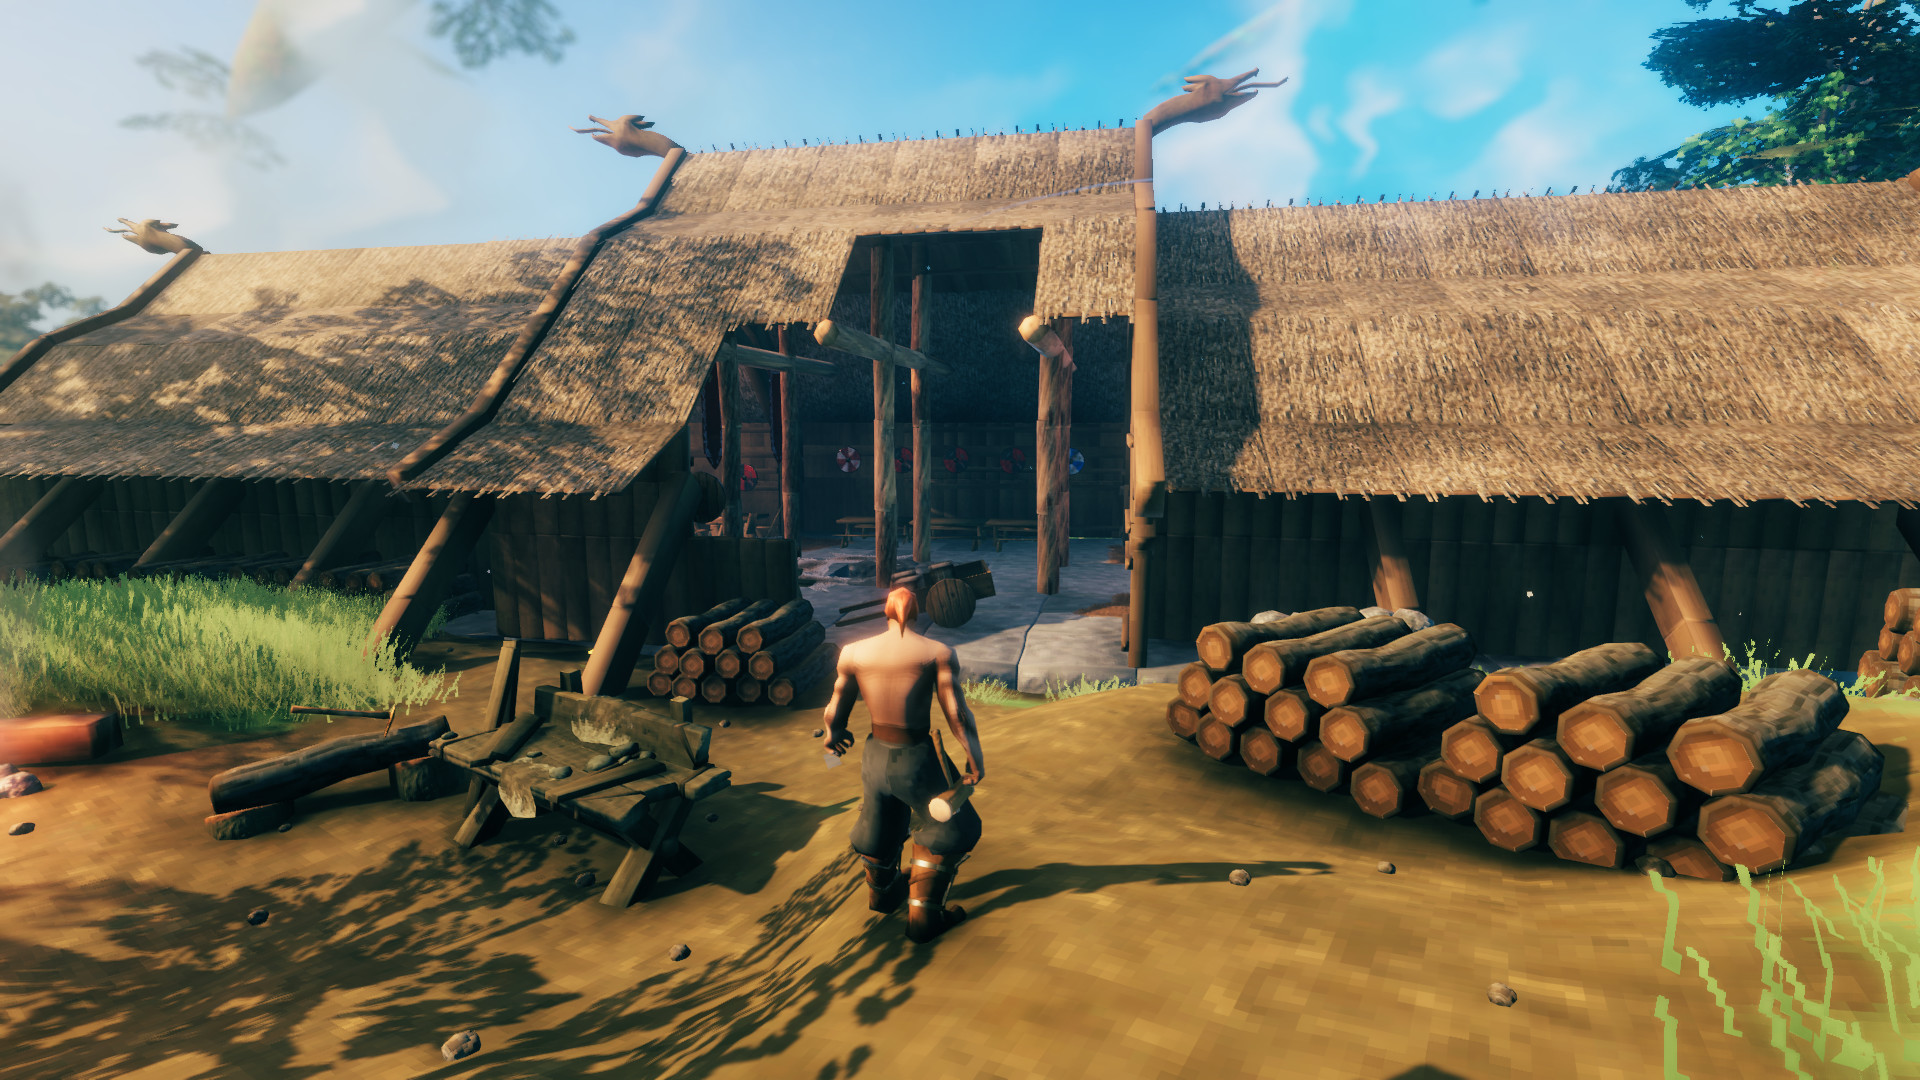 Valheim Plus mod adds shared map system, advanced building modes, and more